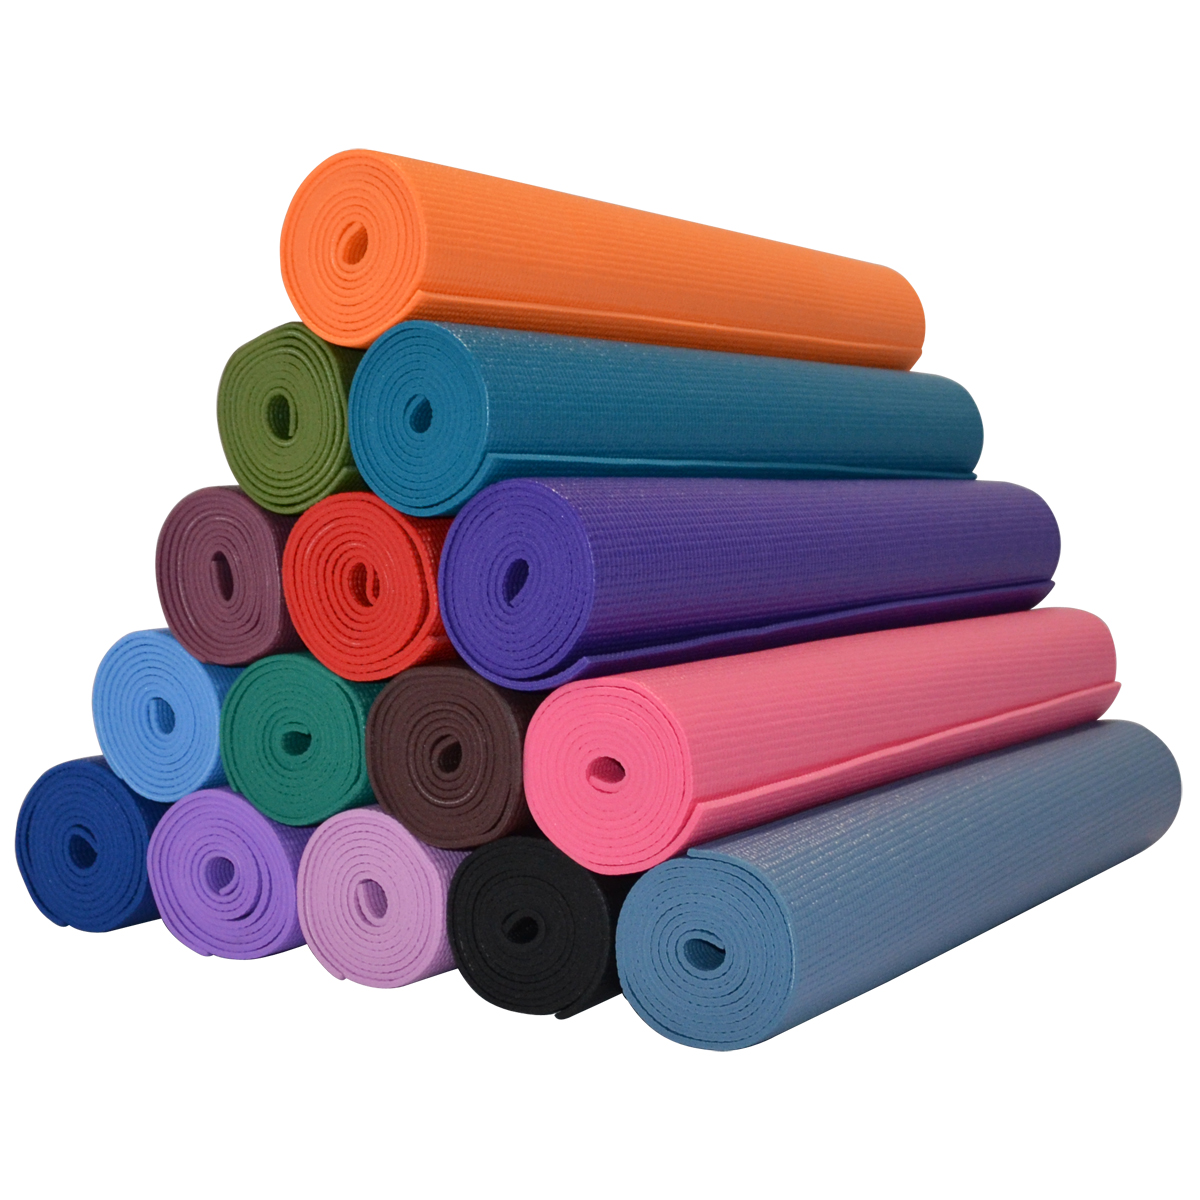 Yoga Mat 1/8″ (24 x 68″) by Yoga Direct